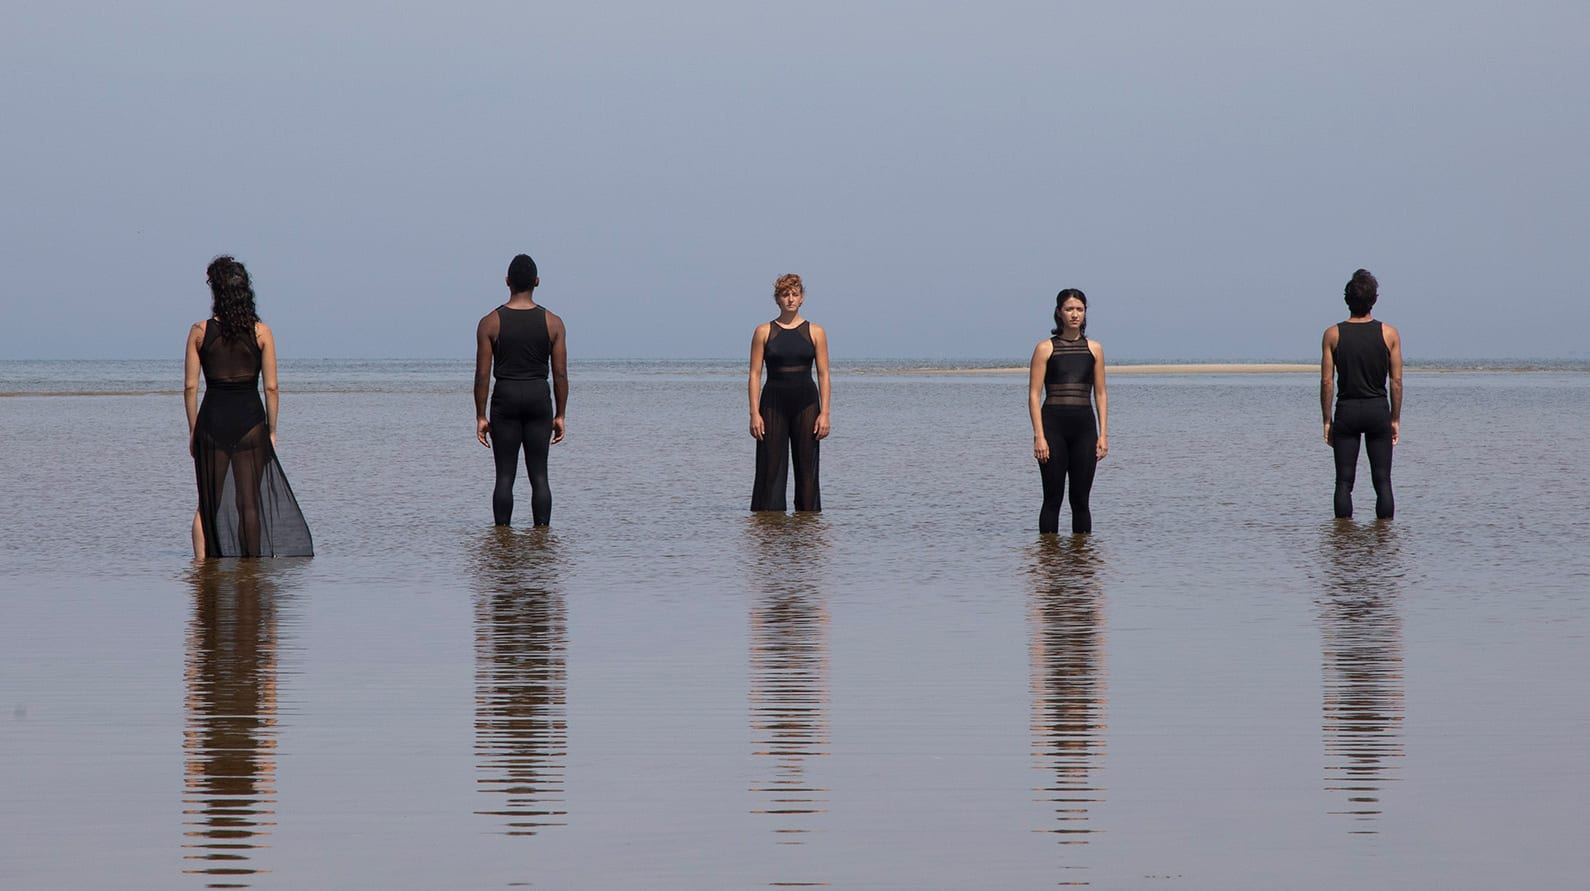 Performers from the Boston Dance Theater pose amid the rising tide along the Cape Cod coastline. (Photo courtesy of Larry Pratt, © Boston Dance Theater)